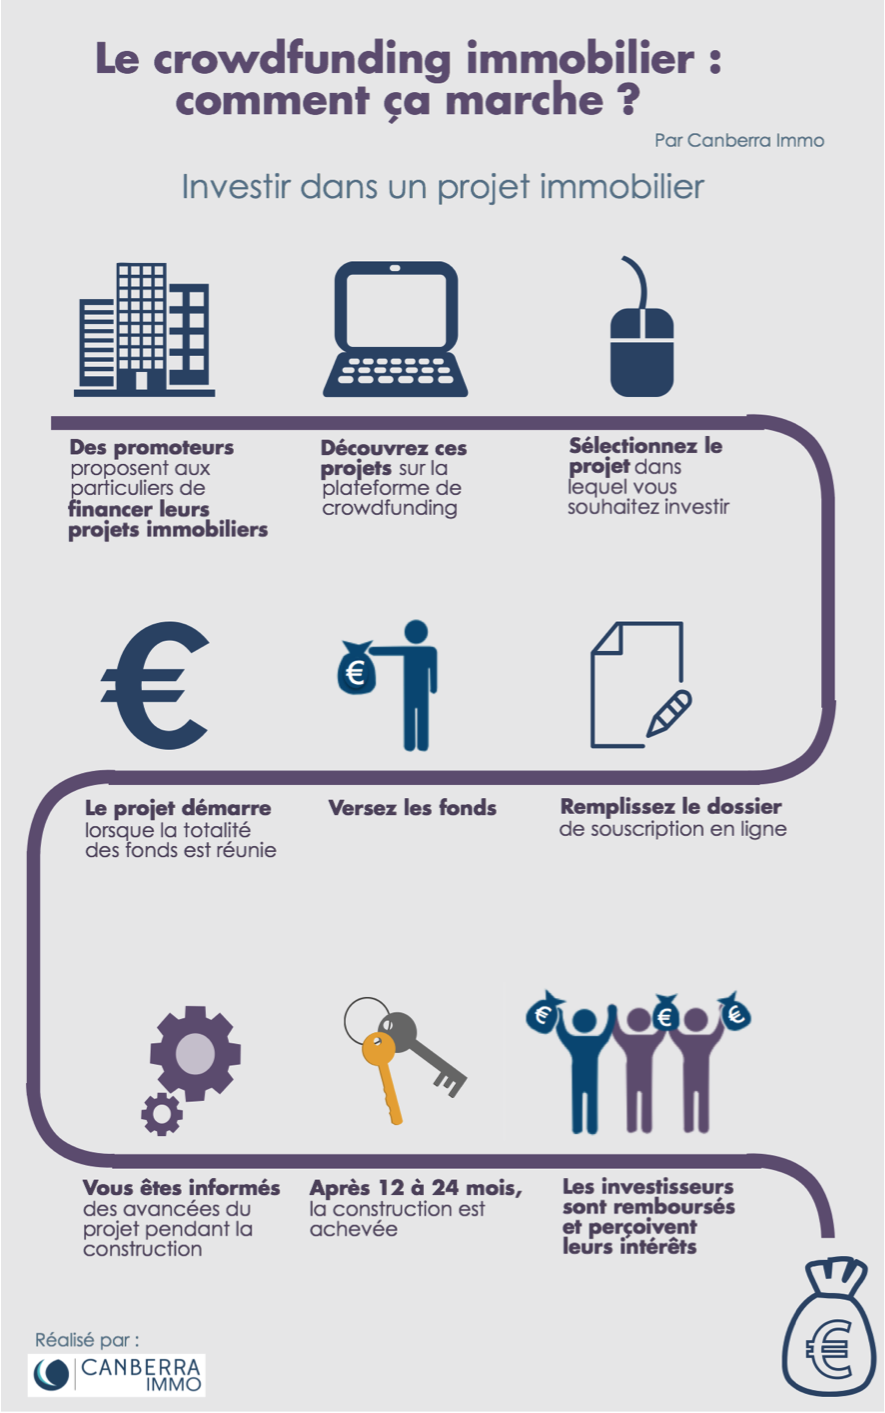 Infographie Crowdfunding Immobilier Comment Ca Marche Crowdfunding Immobilier Immobilier Conseils Immobiliers